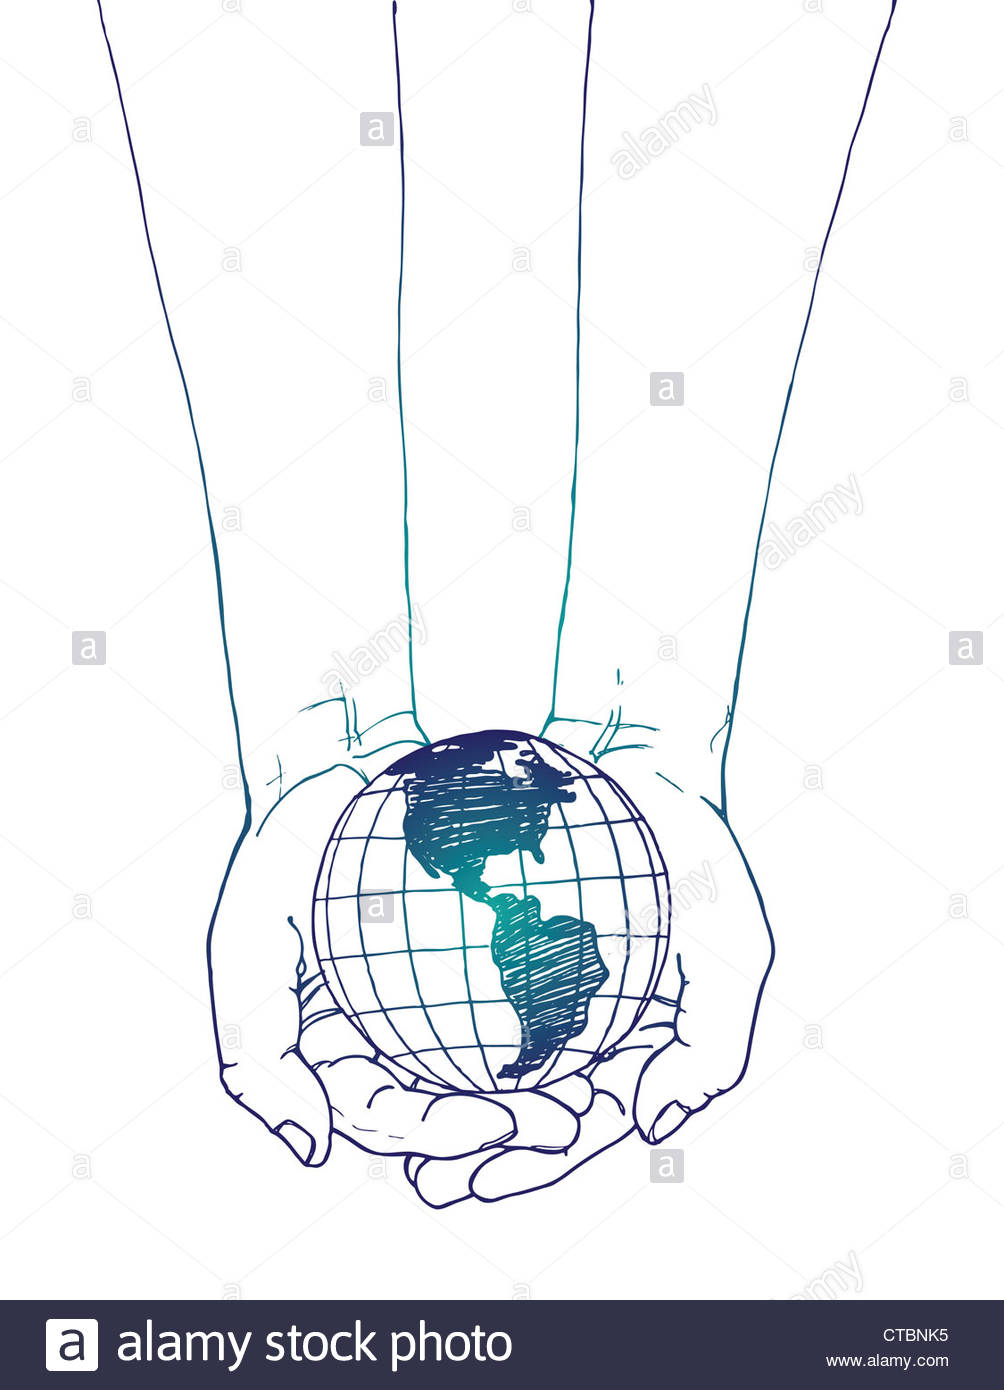 1004x1390 Line Drawing Of Hands Holding The Earth Stock Photo 49430953